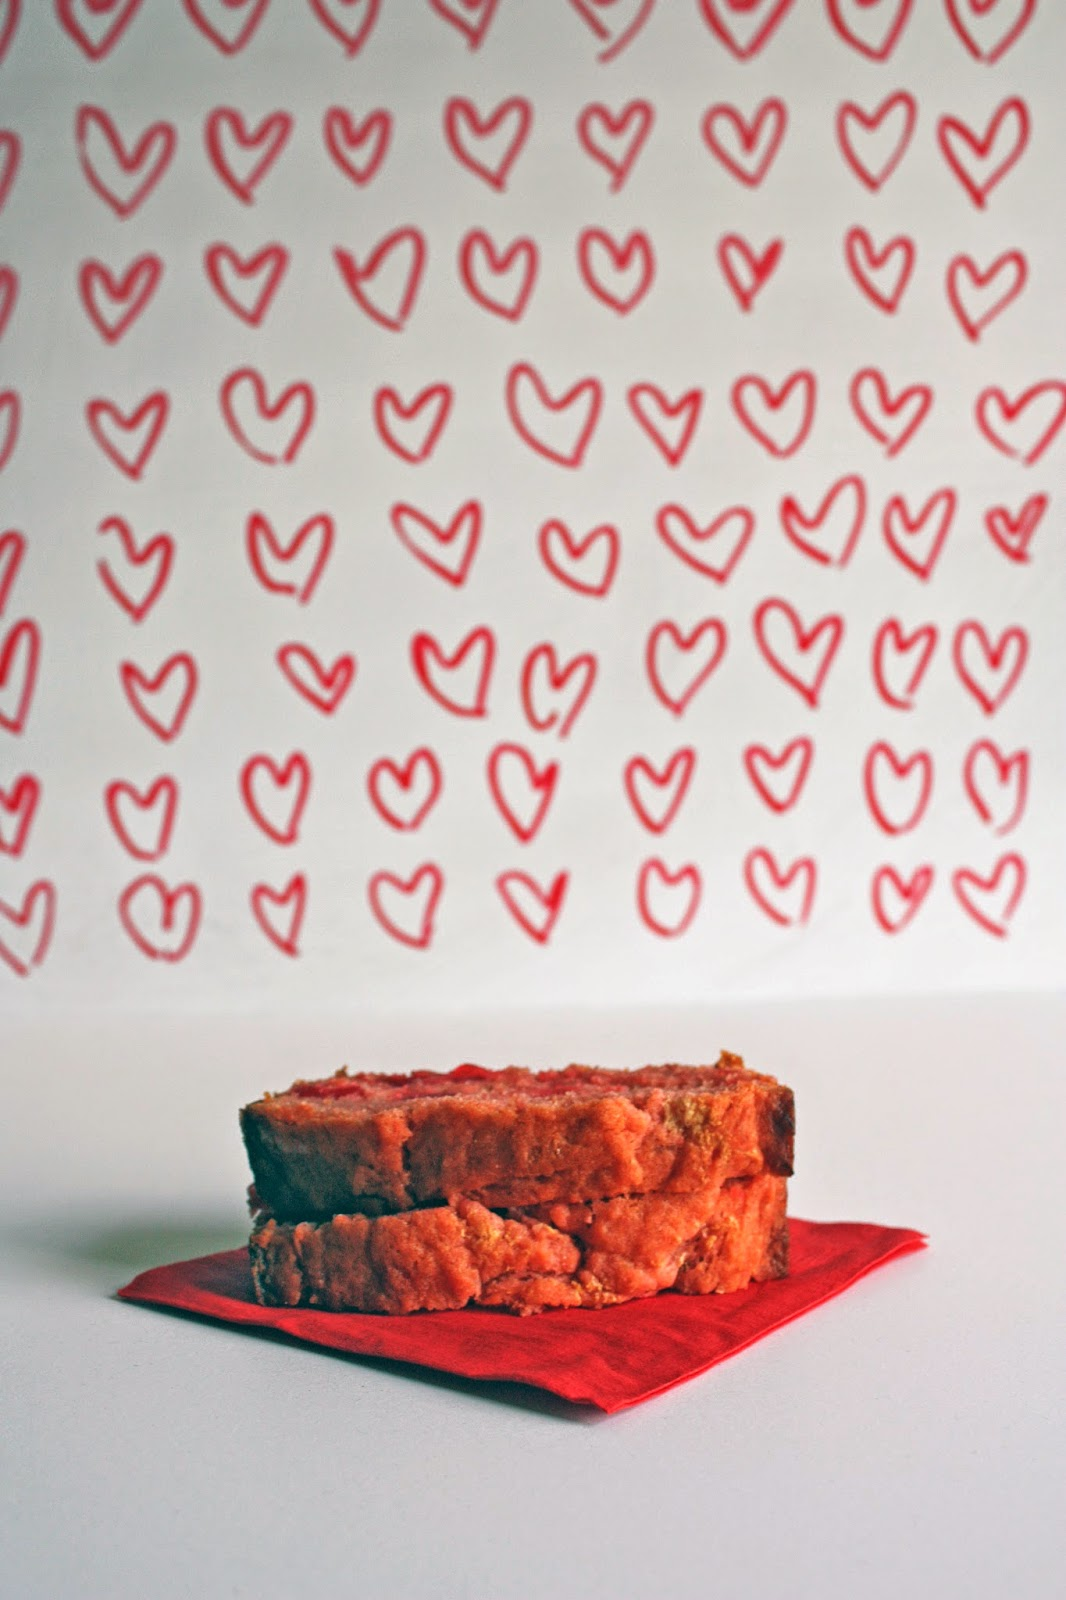 hearts vegan maraschino cherry quick bread red napkin